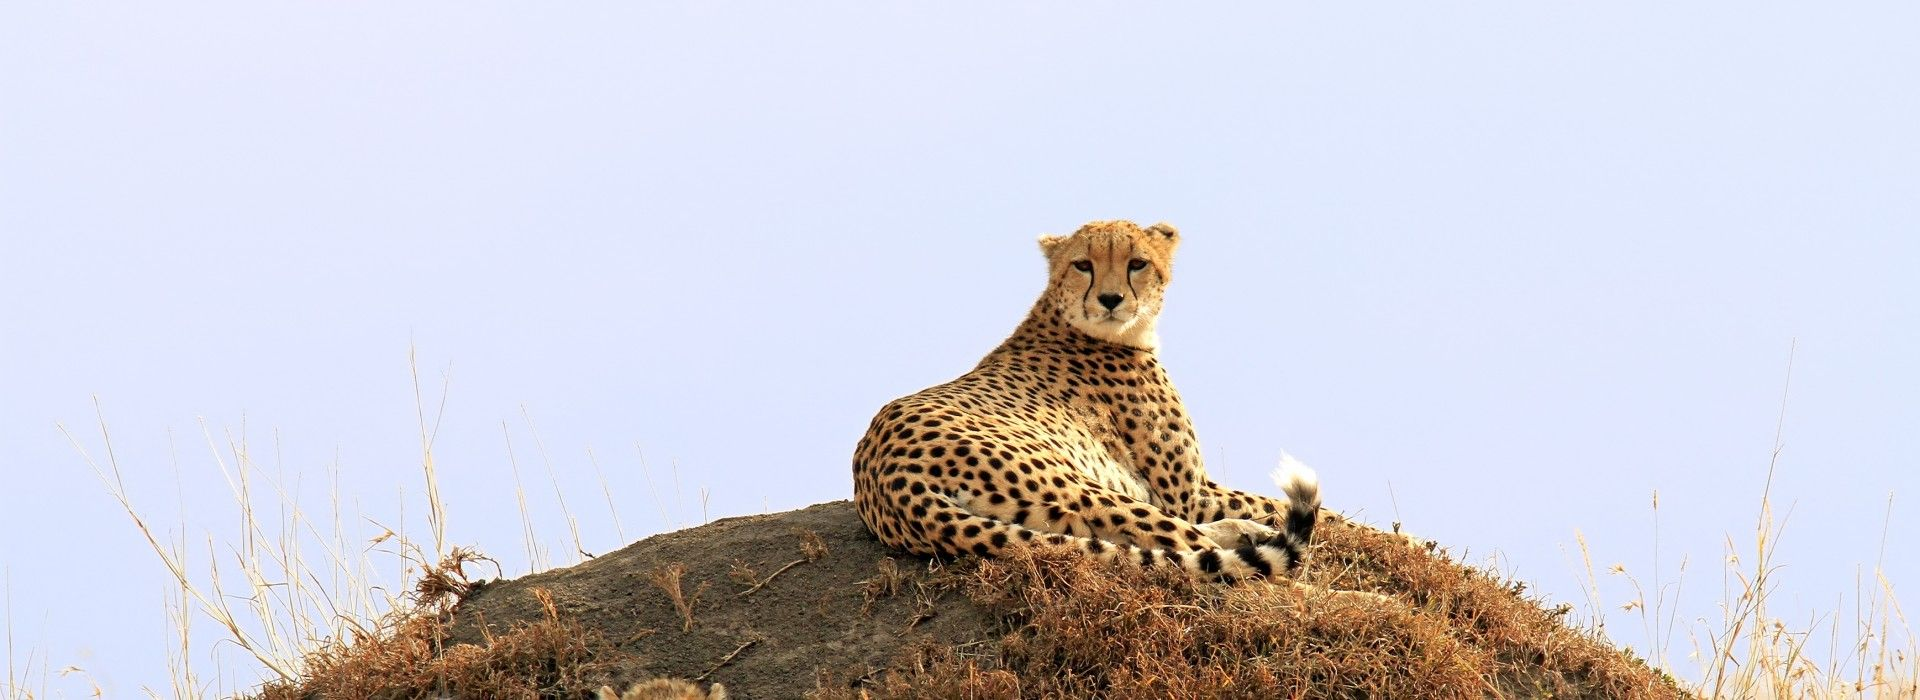 Air tours, road trips and transfers in Nairobi